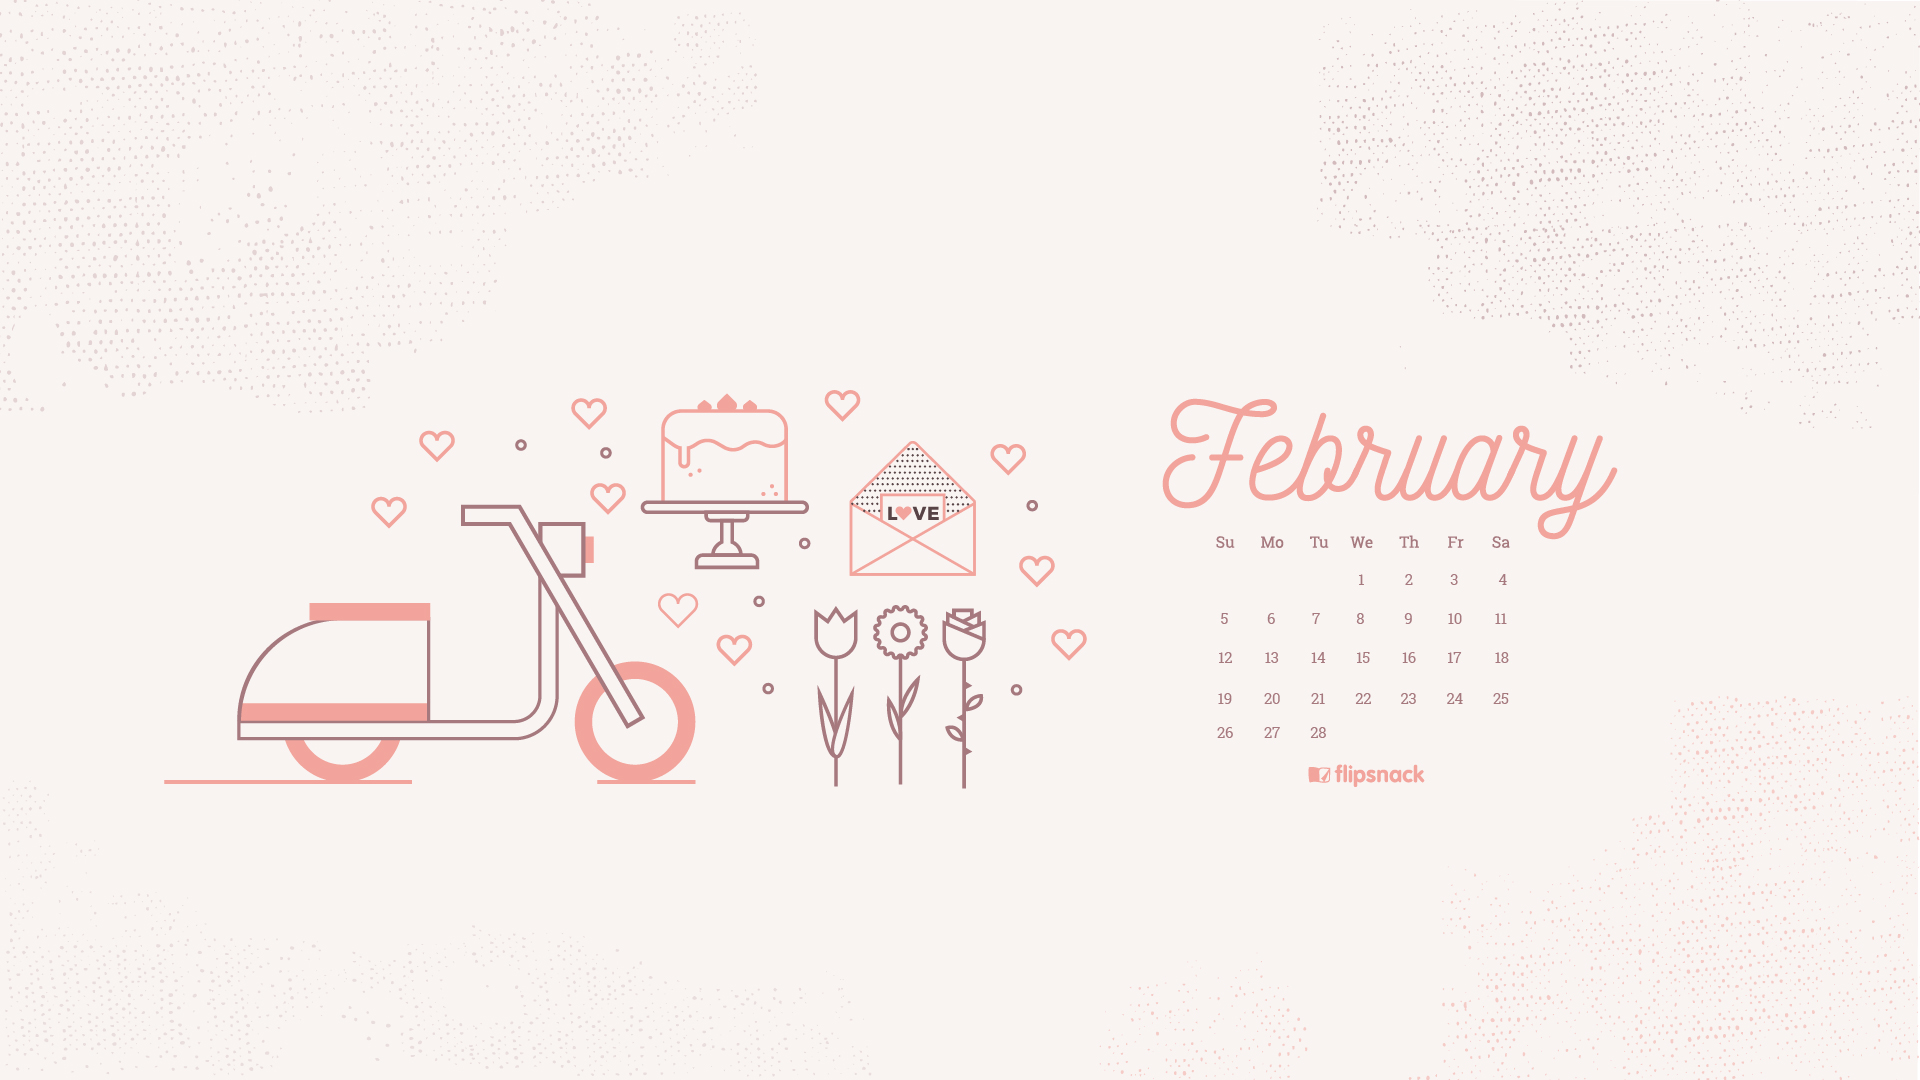 wallpaper calendar desktop background calendar february 2017 download calendar